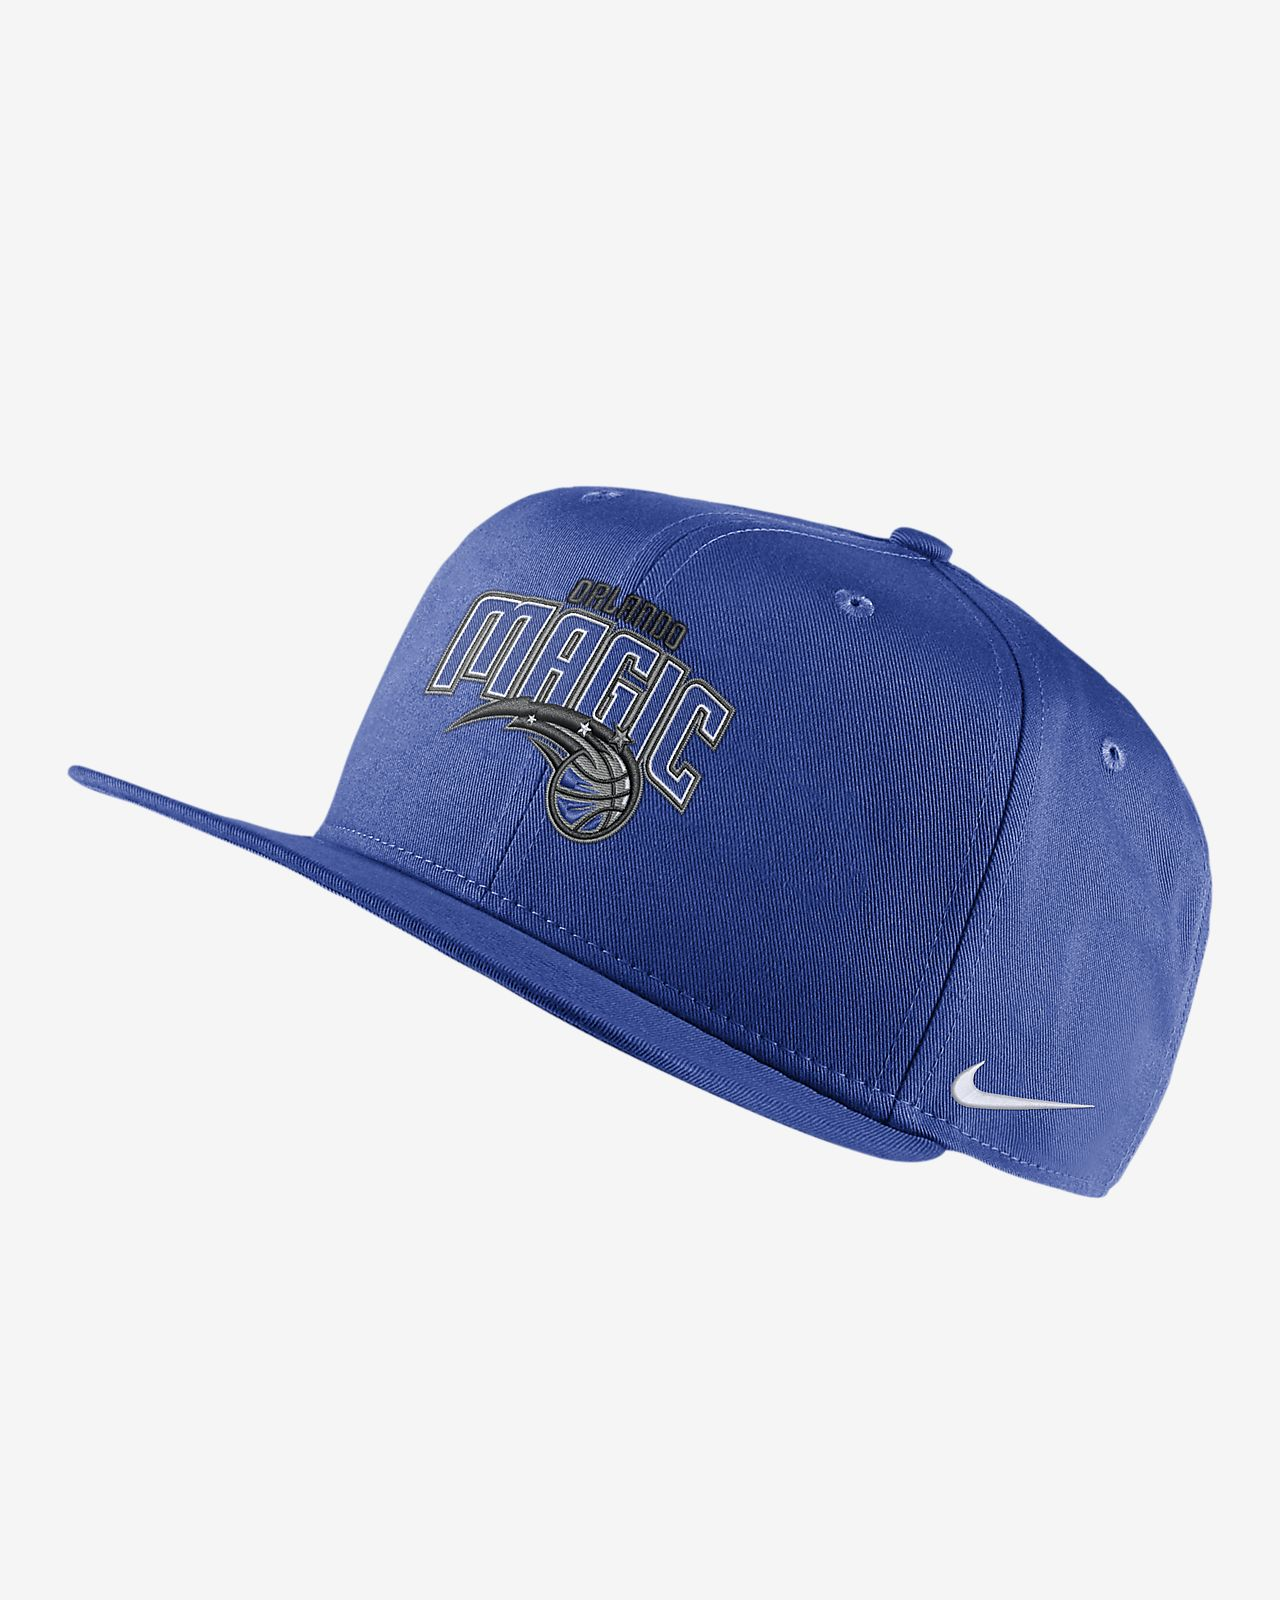 NBA-keps Orlando Magic Nike Pro